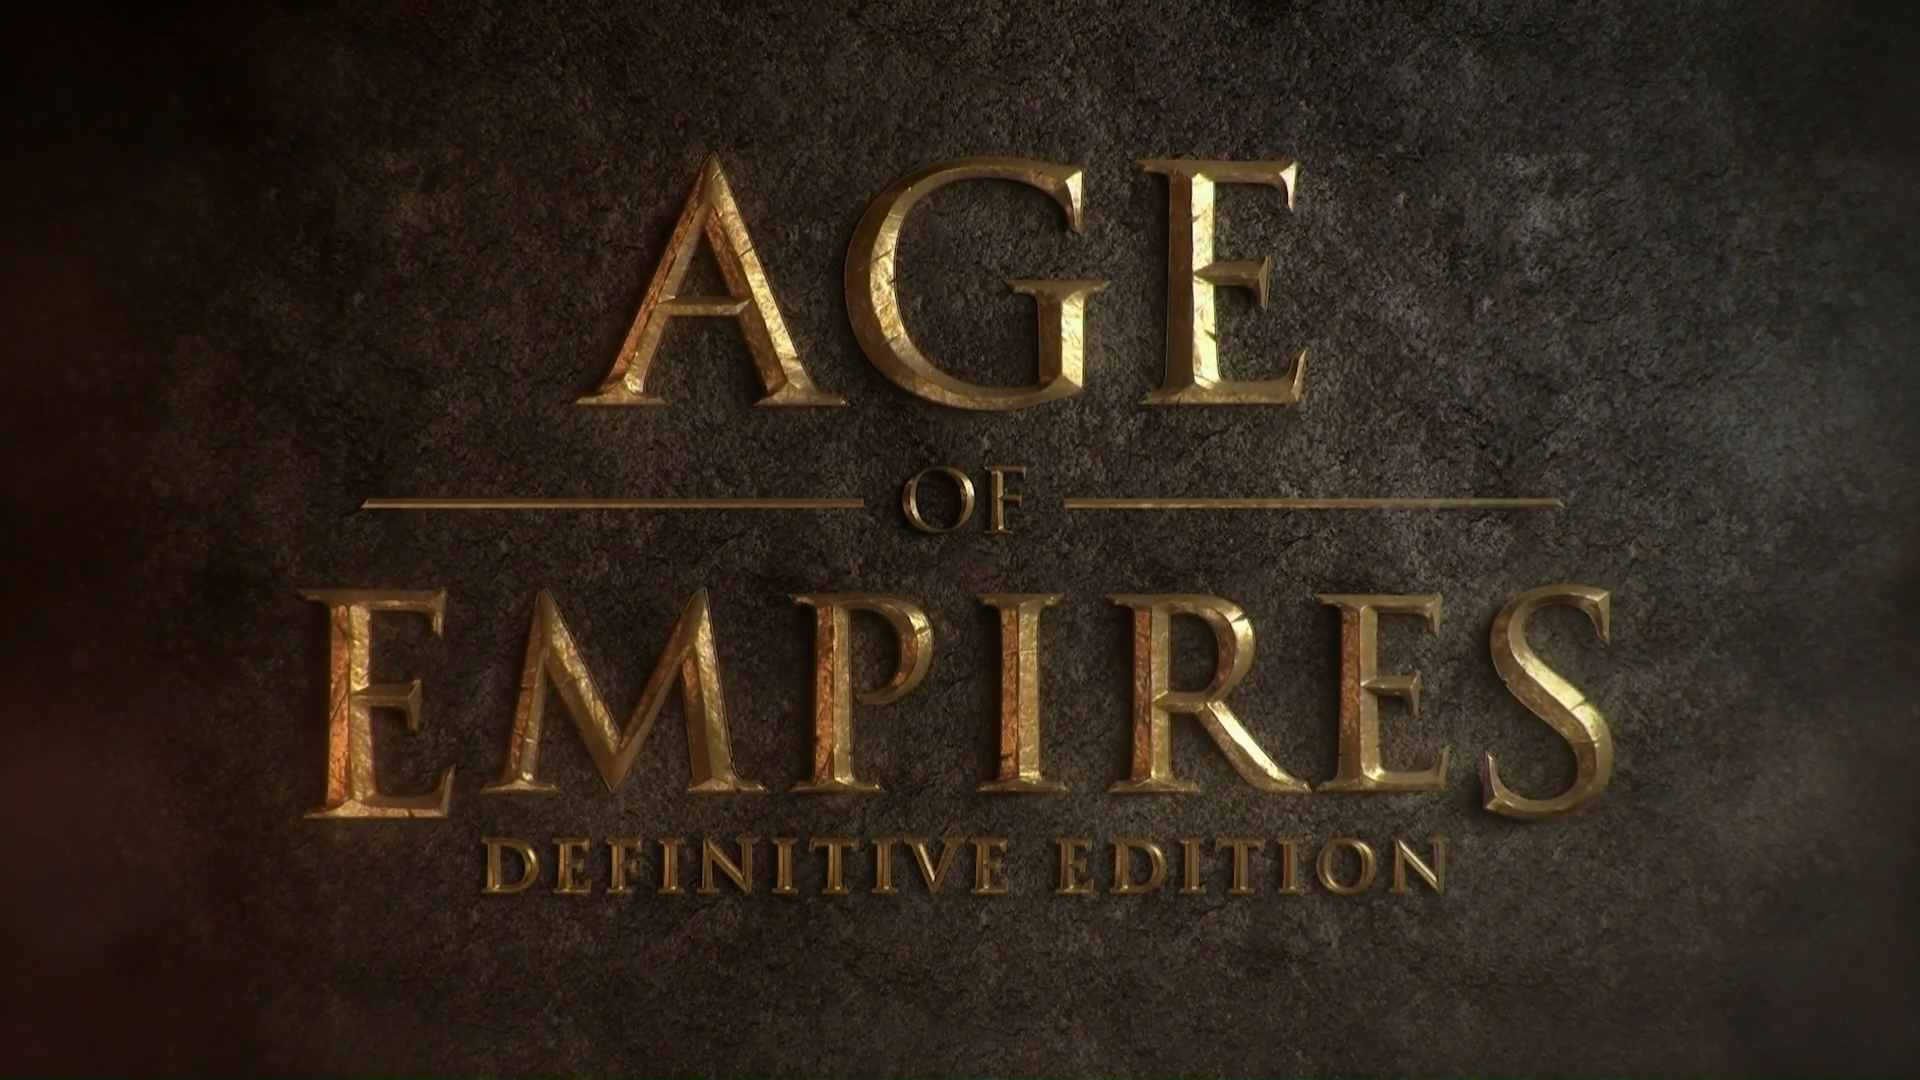 Microsoft will refund those who pre-ordered Age of Empires